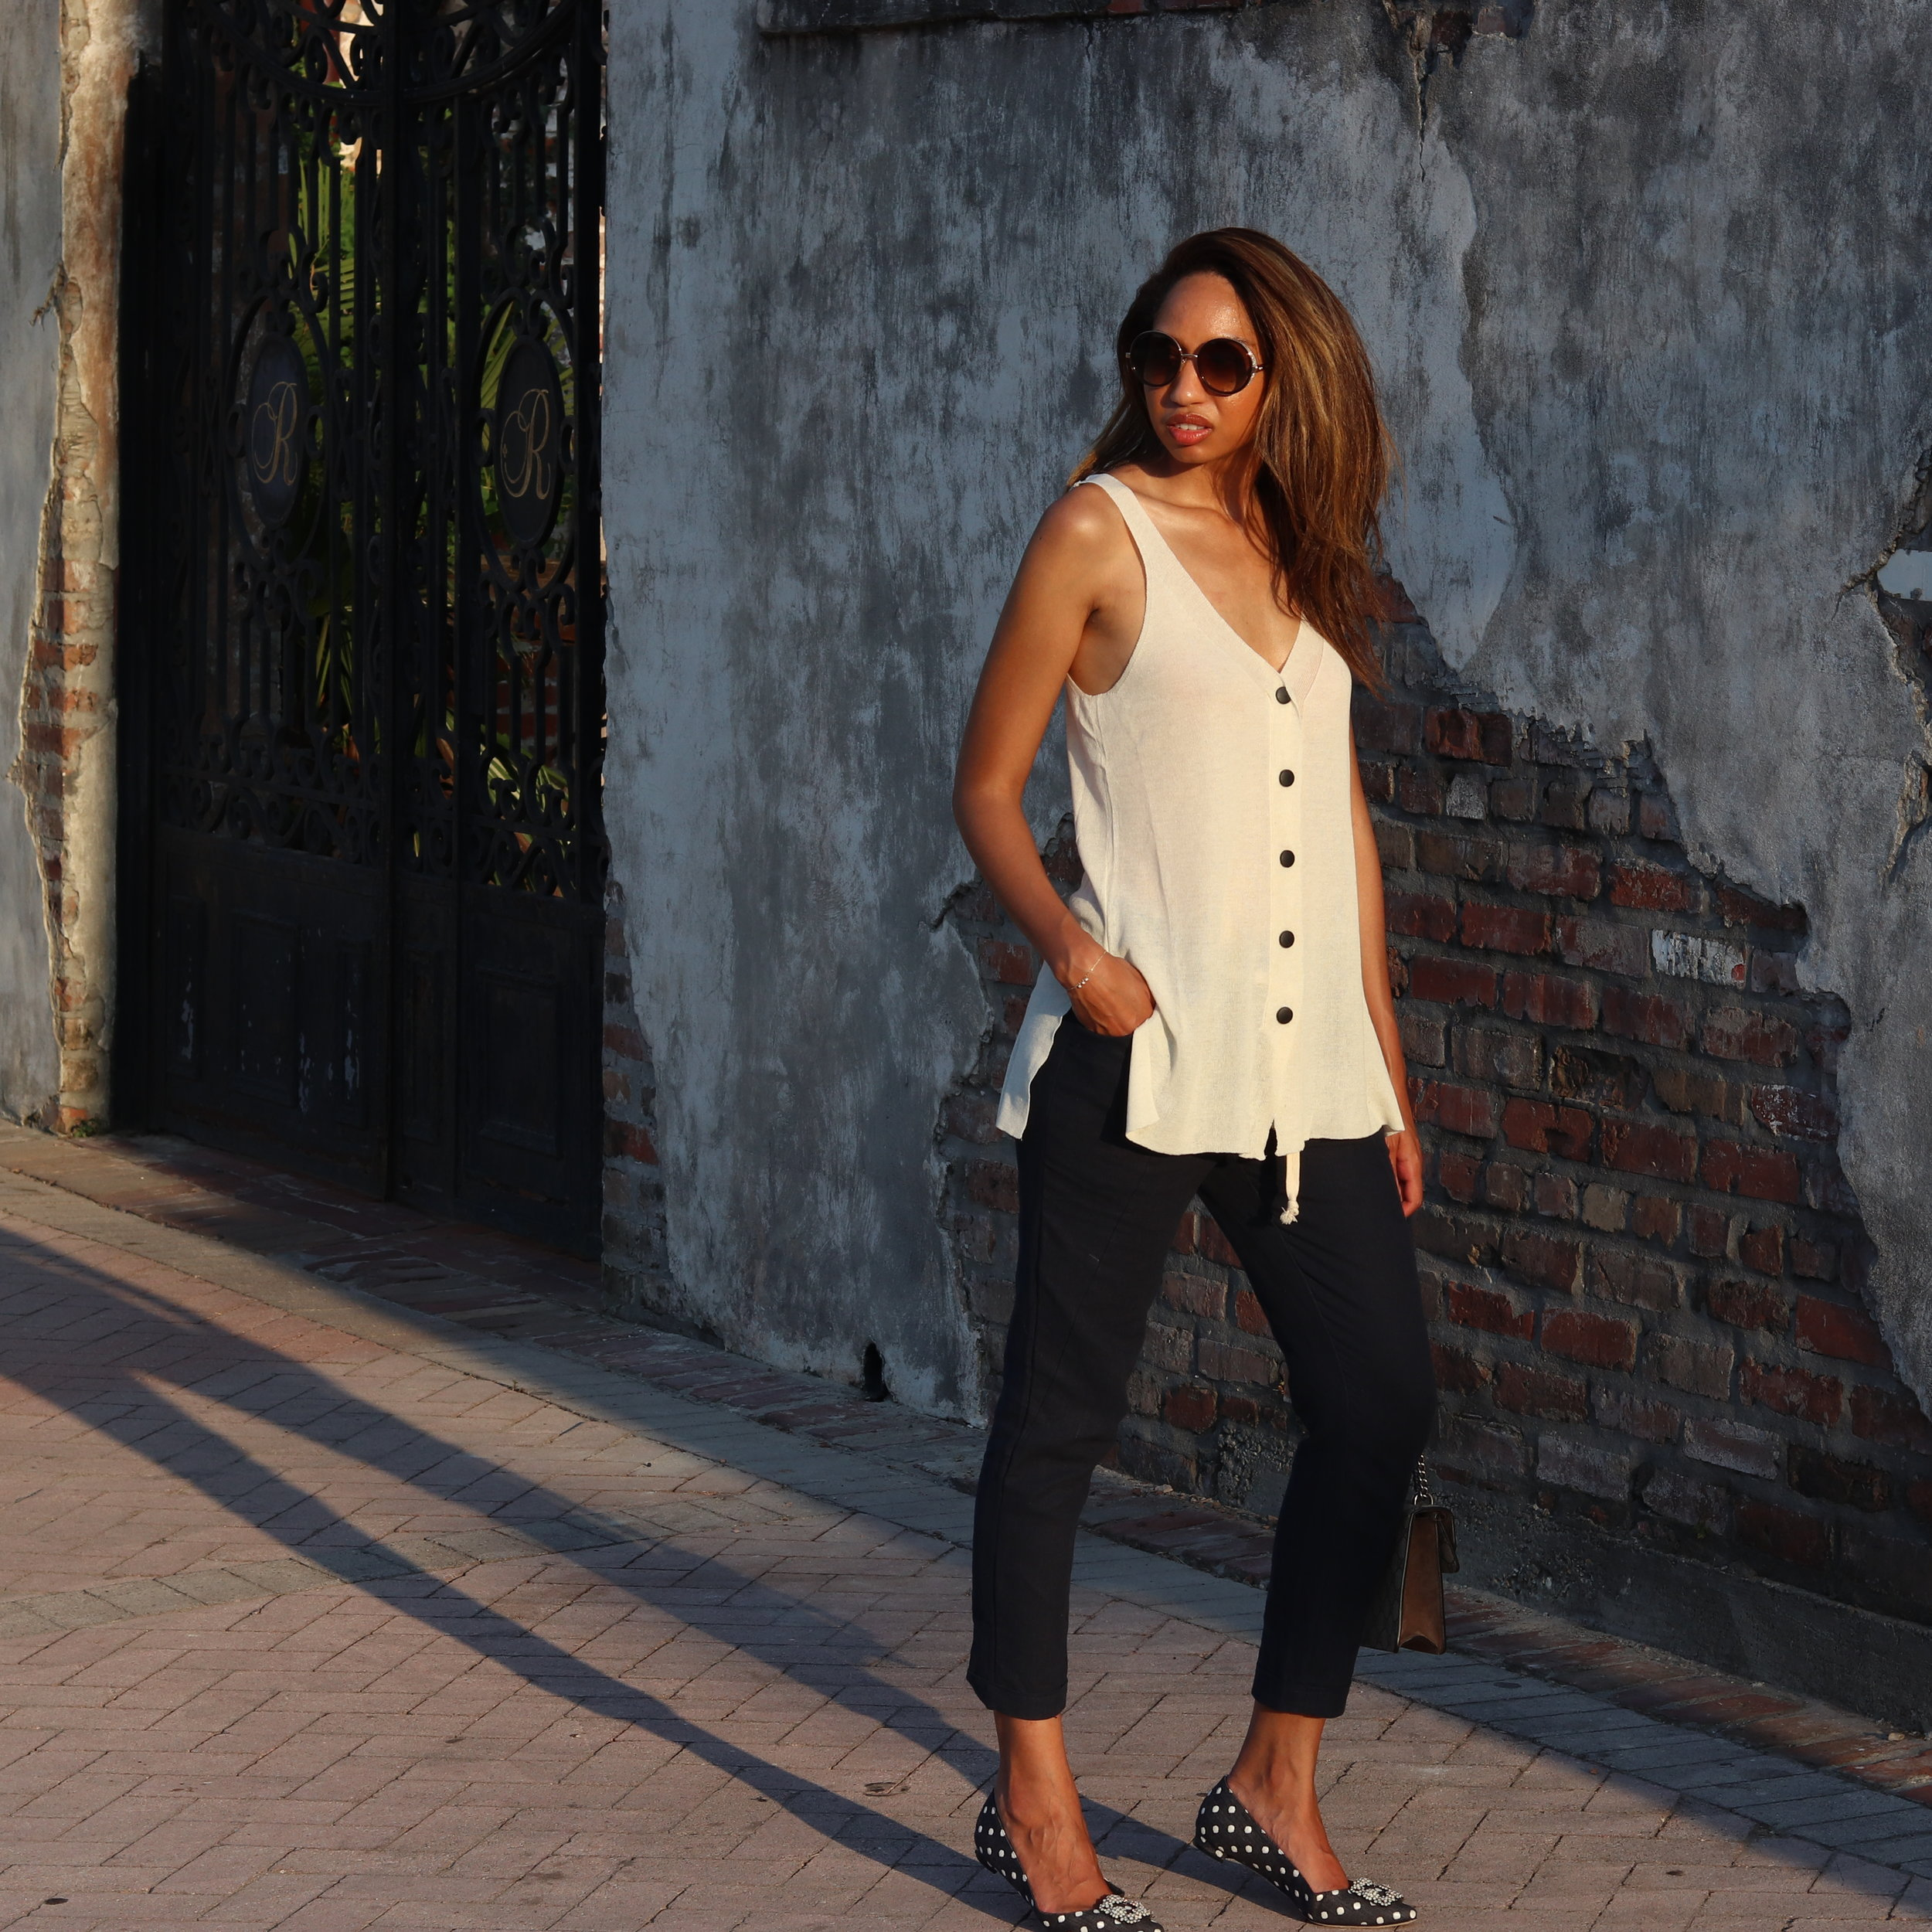 Top:  The Sleevless Seater Vest   Pants:  The Summer Jogger